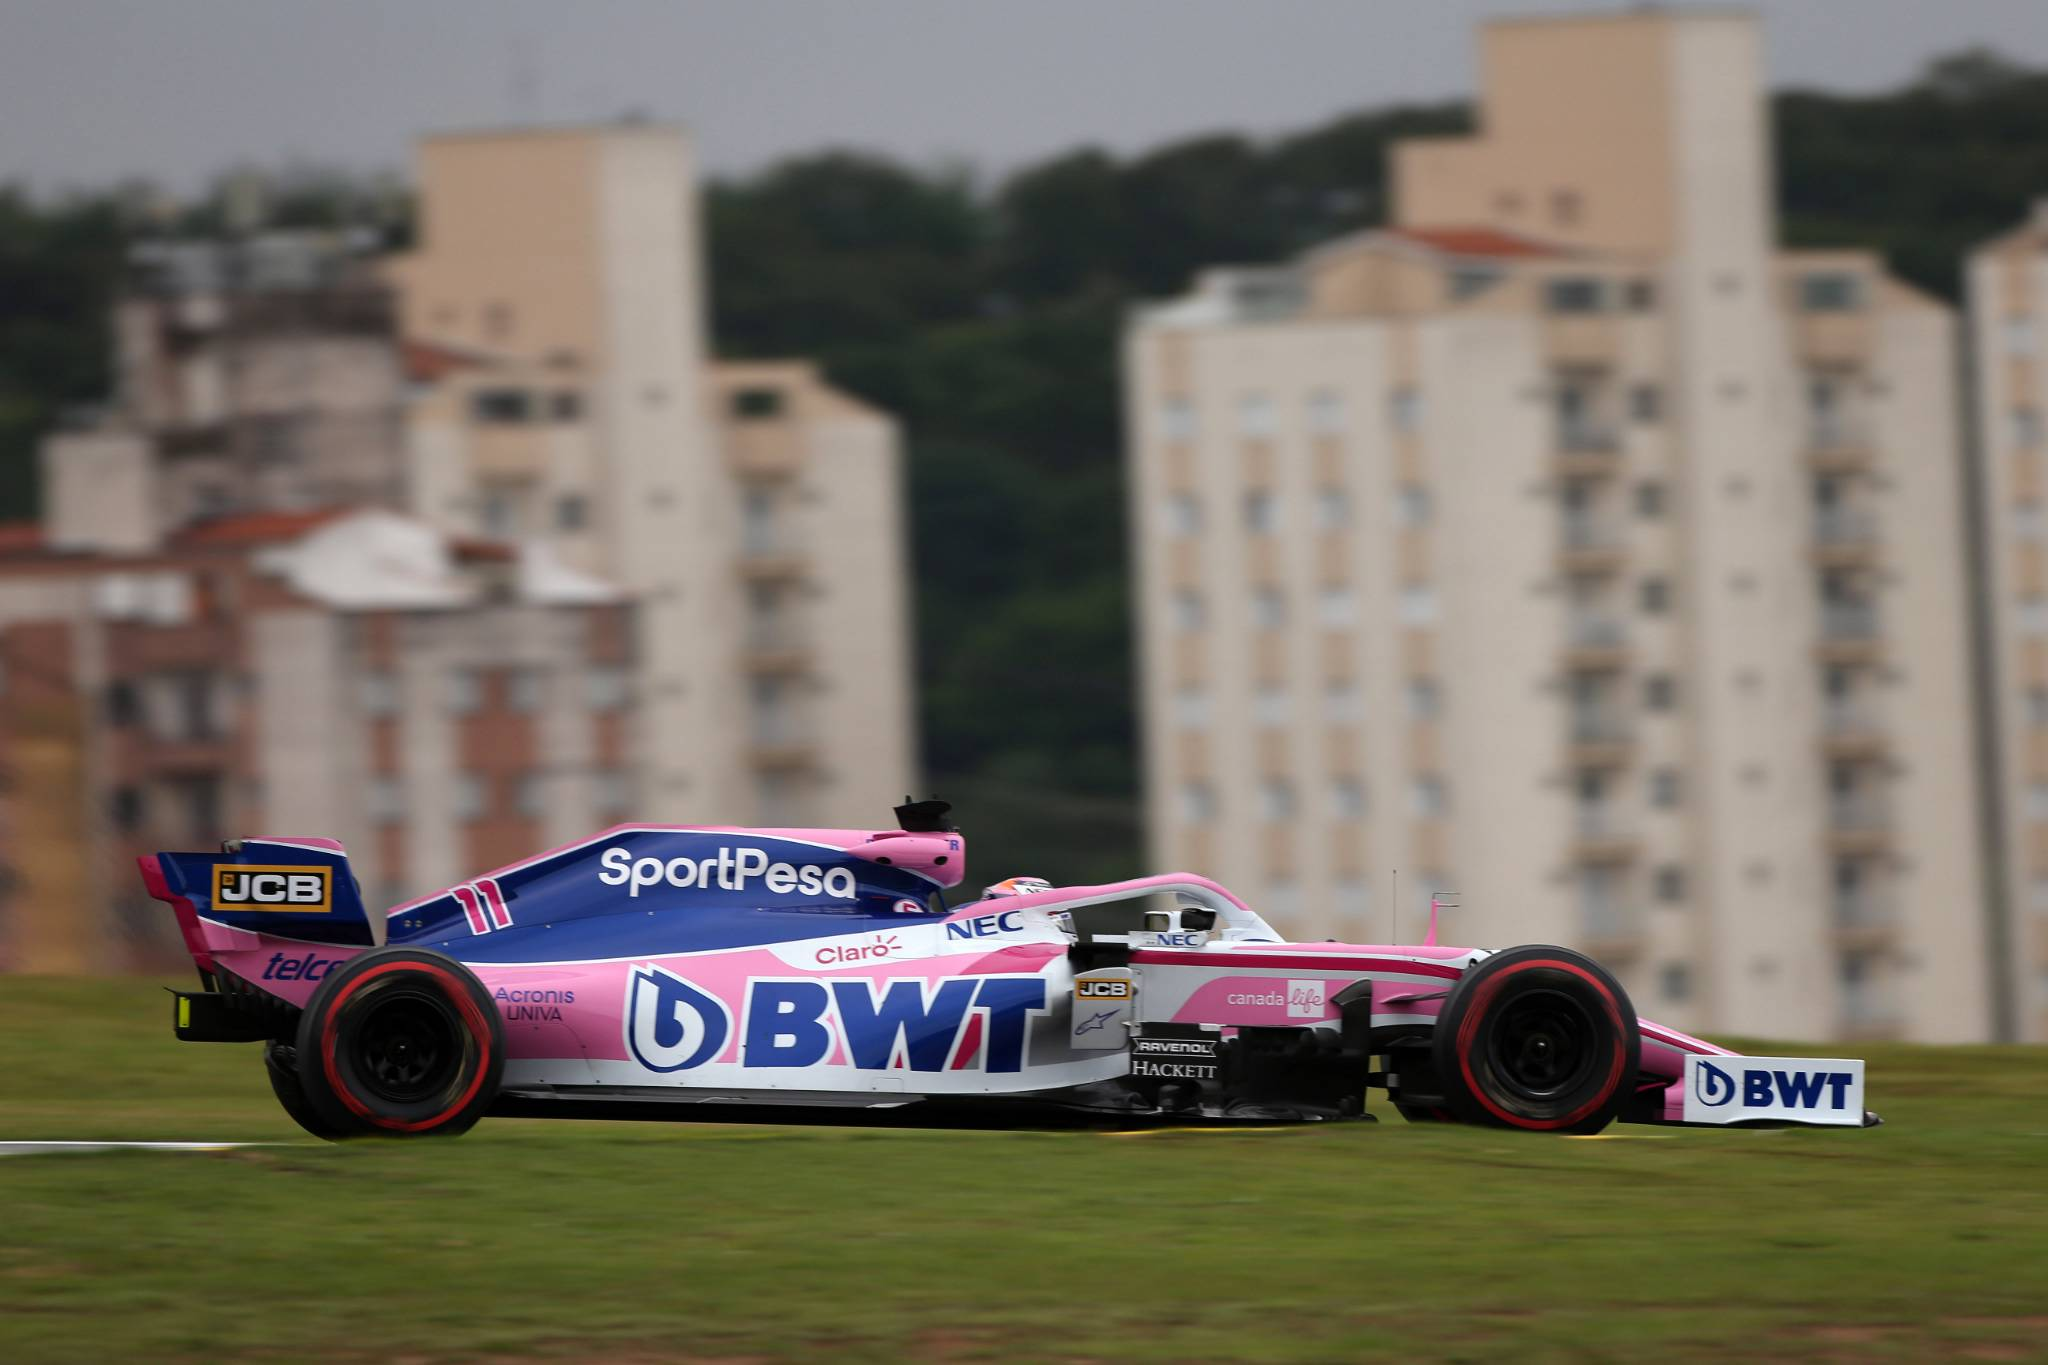 15.11.2019 - Free Practice 2, Sergio Perez (MEX) Racing Point F1 Team RP19